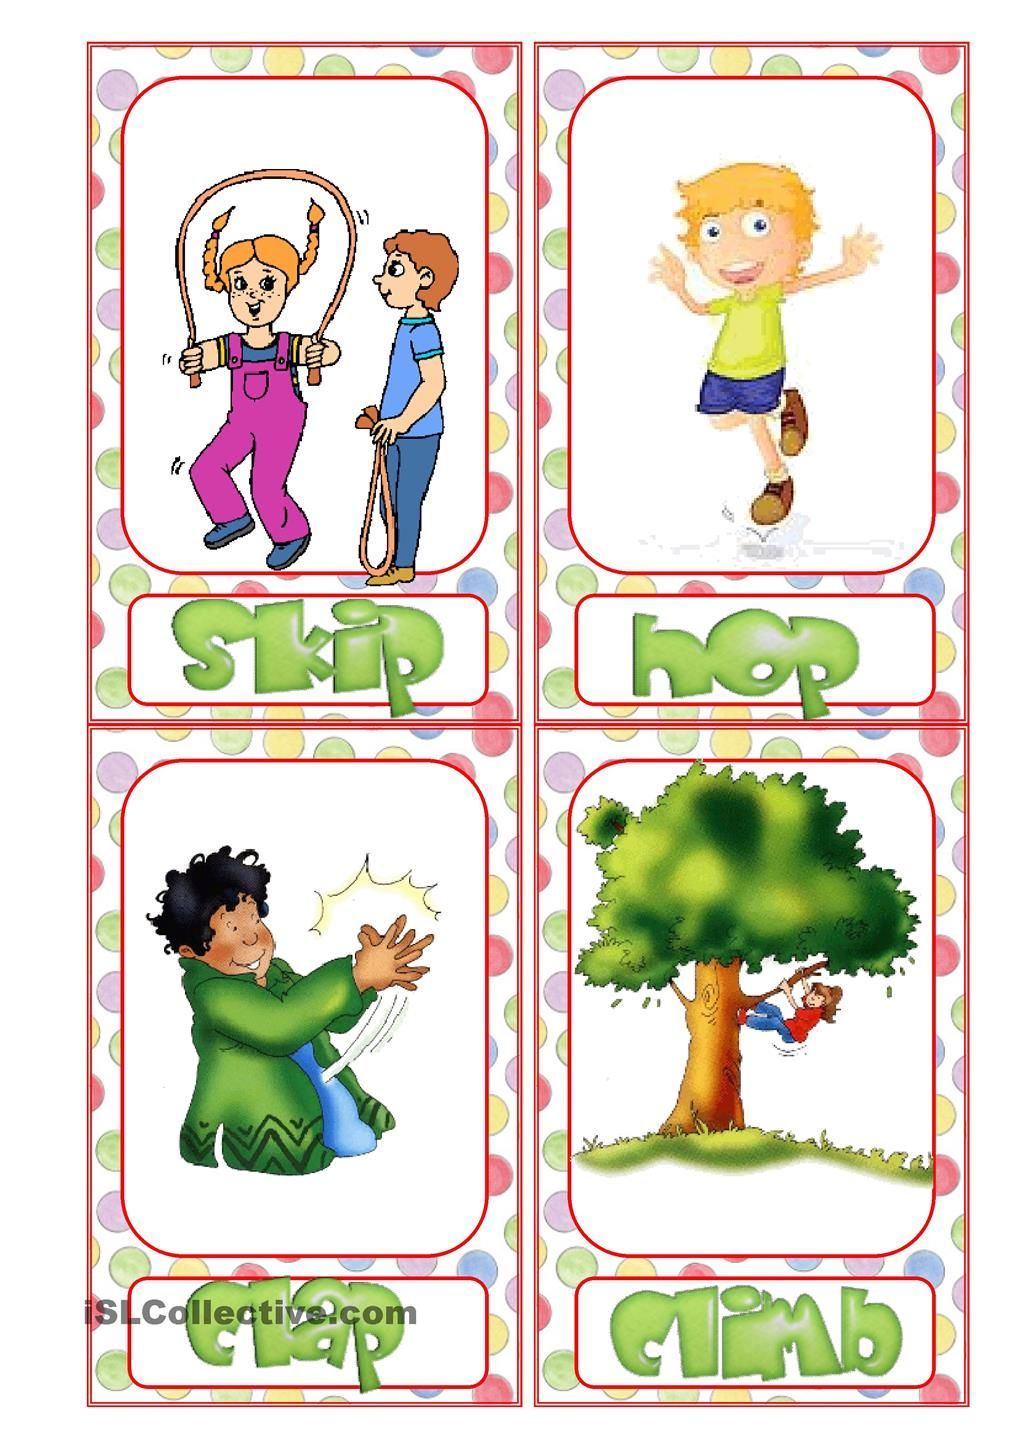 action verb clipart clipartfest english vocabulary action verbs action verb flashcards action verbs student action verb